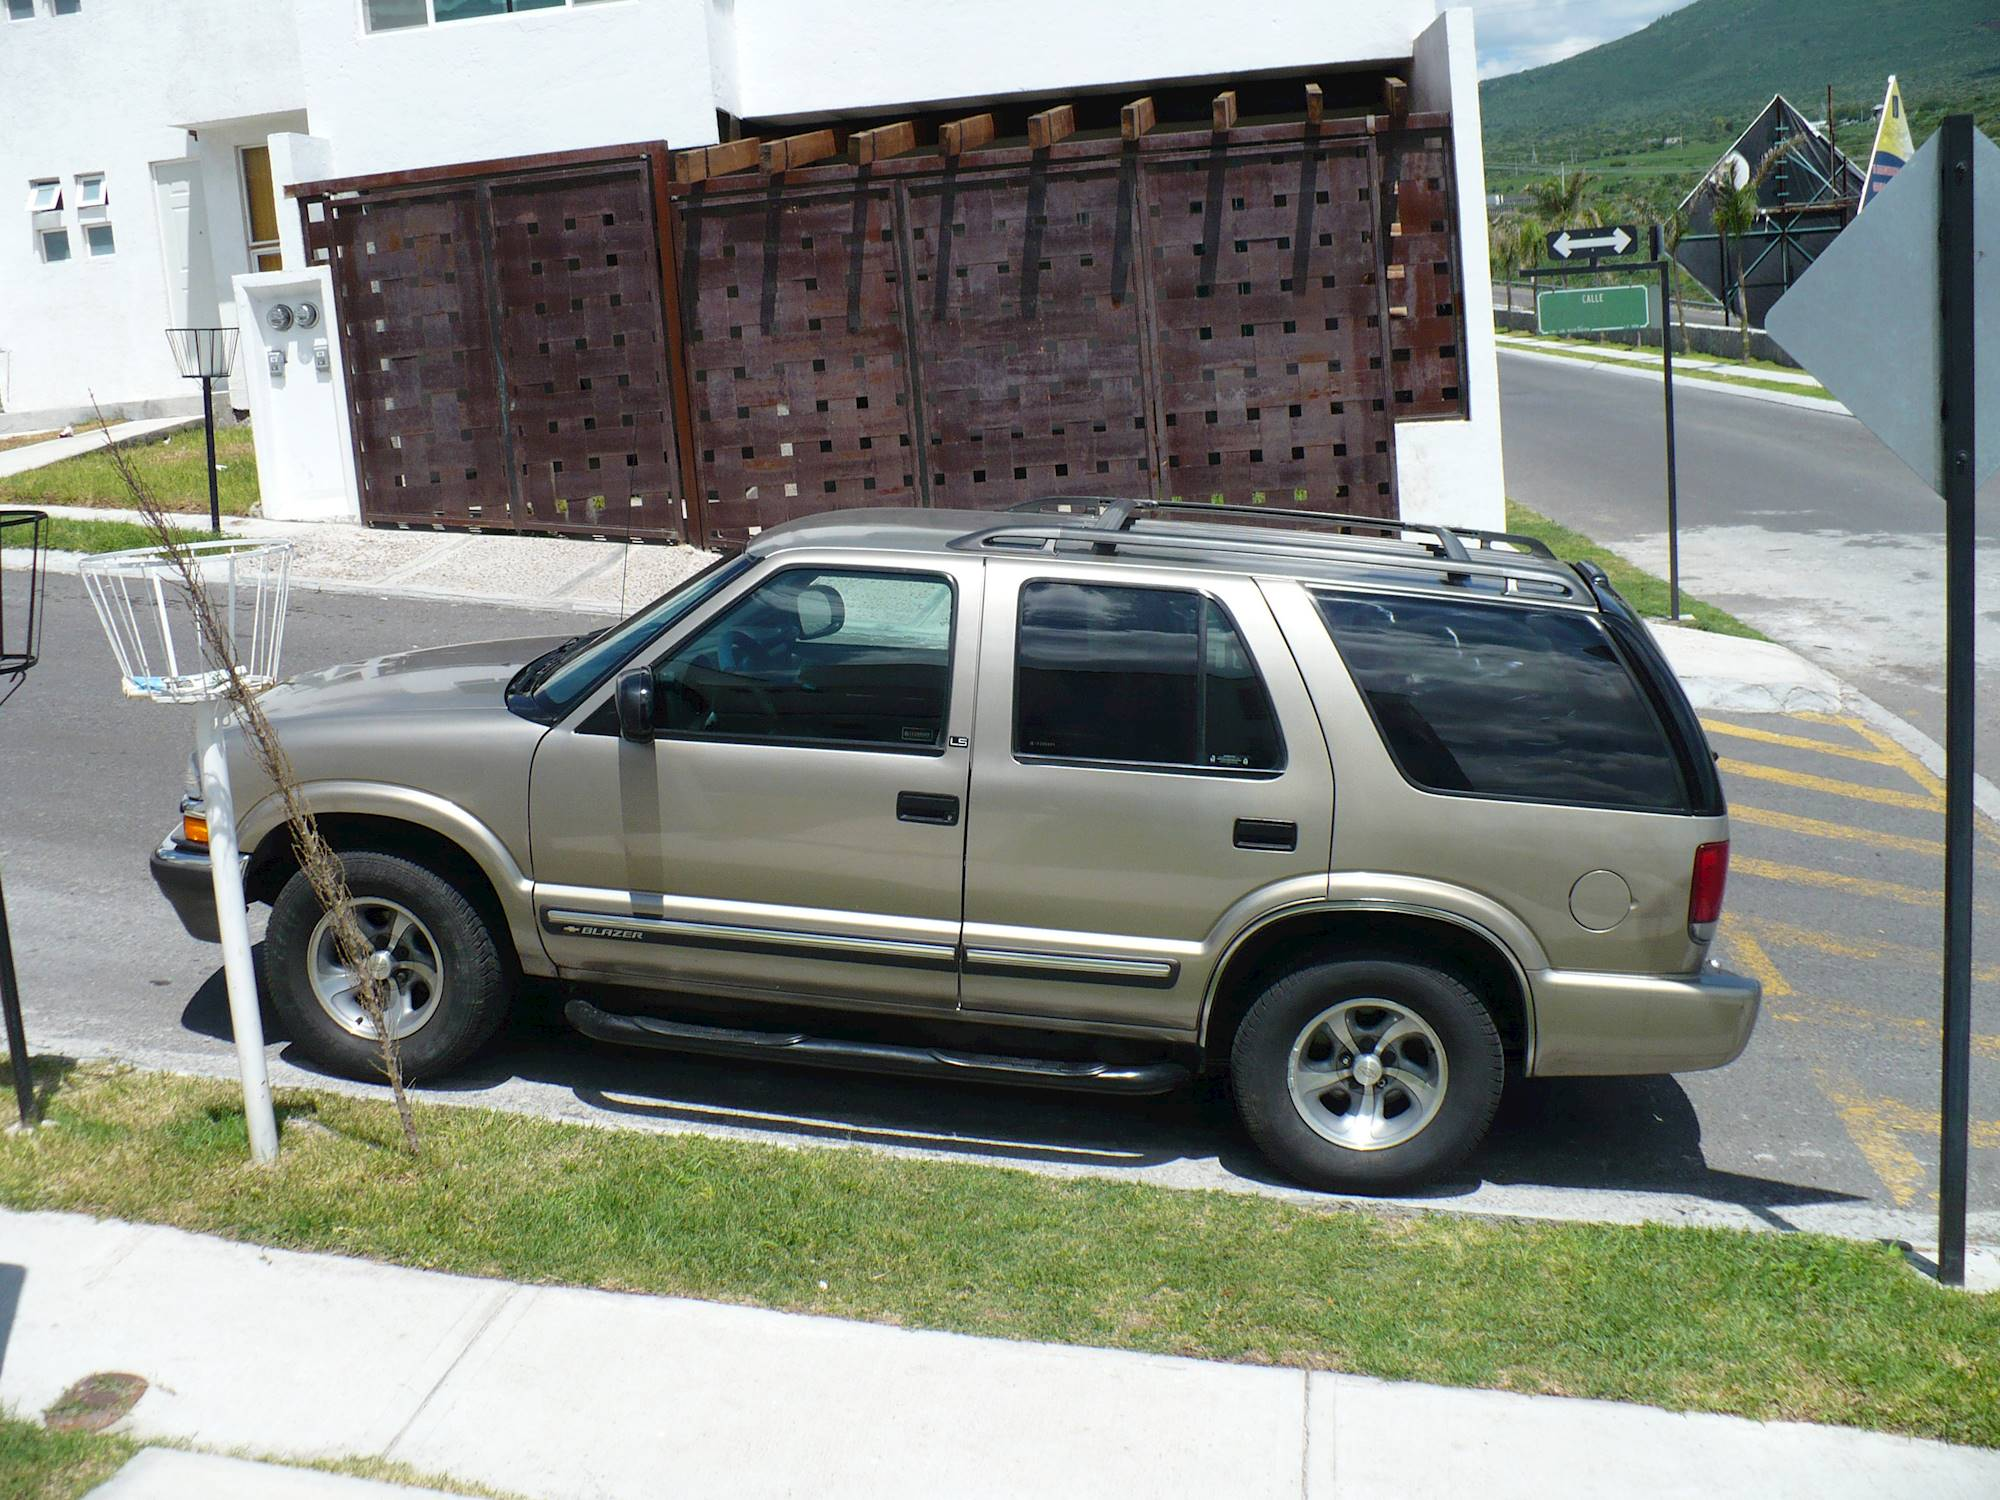 2000 Chevrolet Blazer 4 Door 4WD TrailBlazer